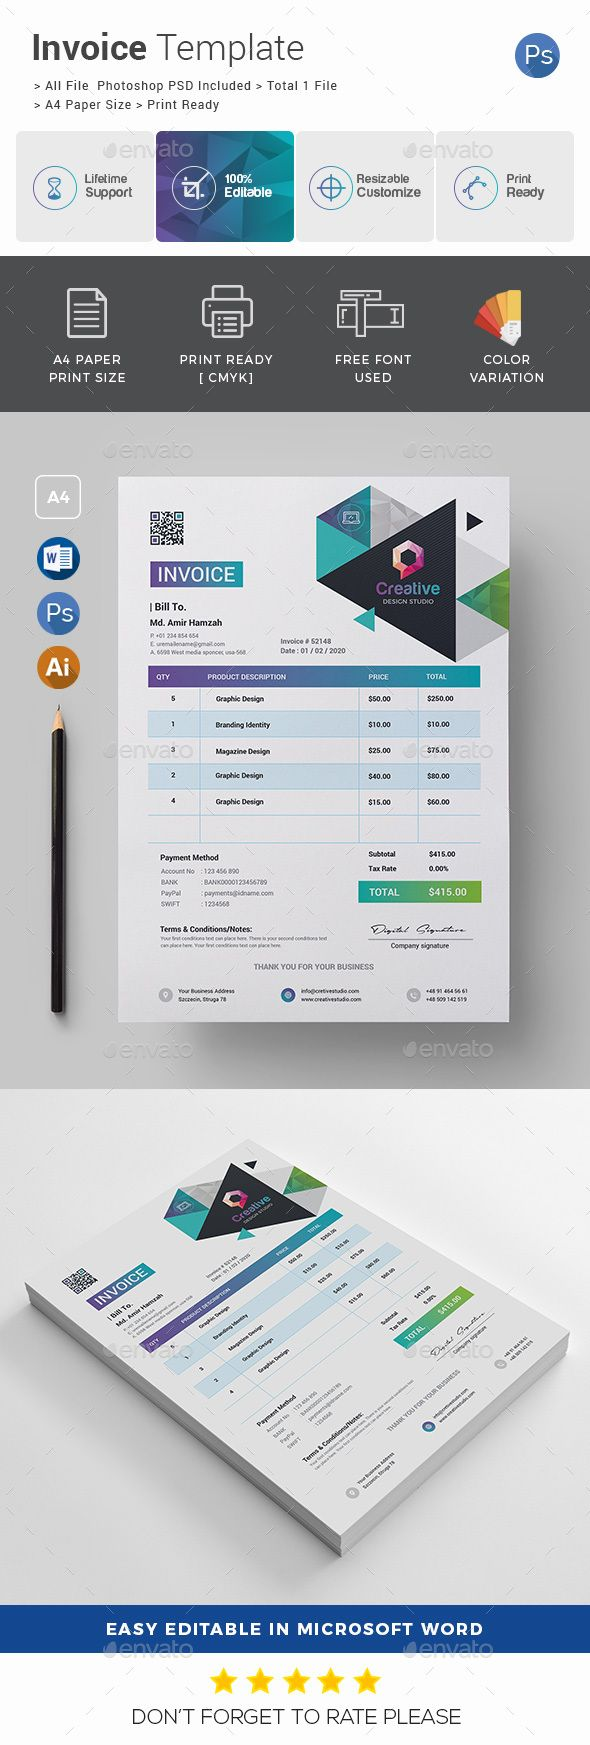 Invoice Template Psd Proposal Invoice Templates Pinterest